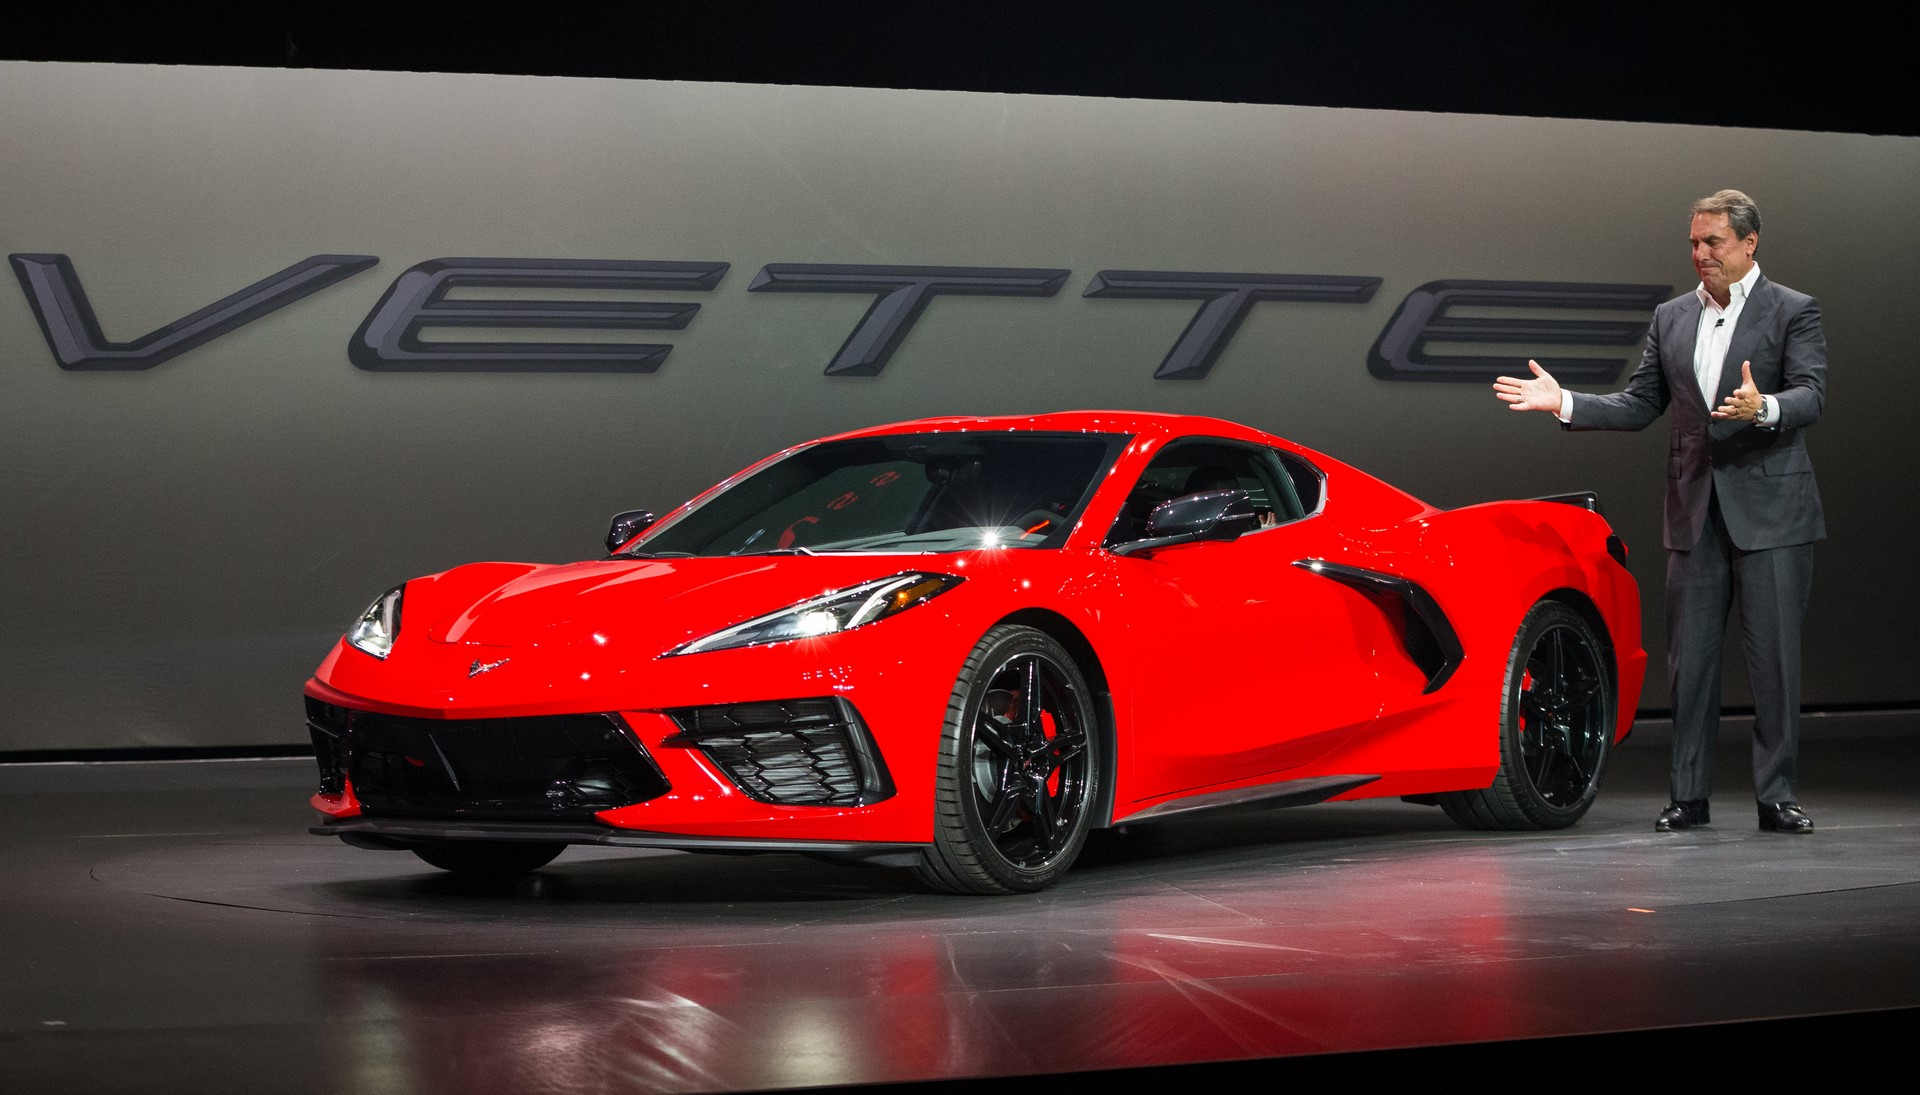 2020 Chevrolet Corvette Stingray Unveiled